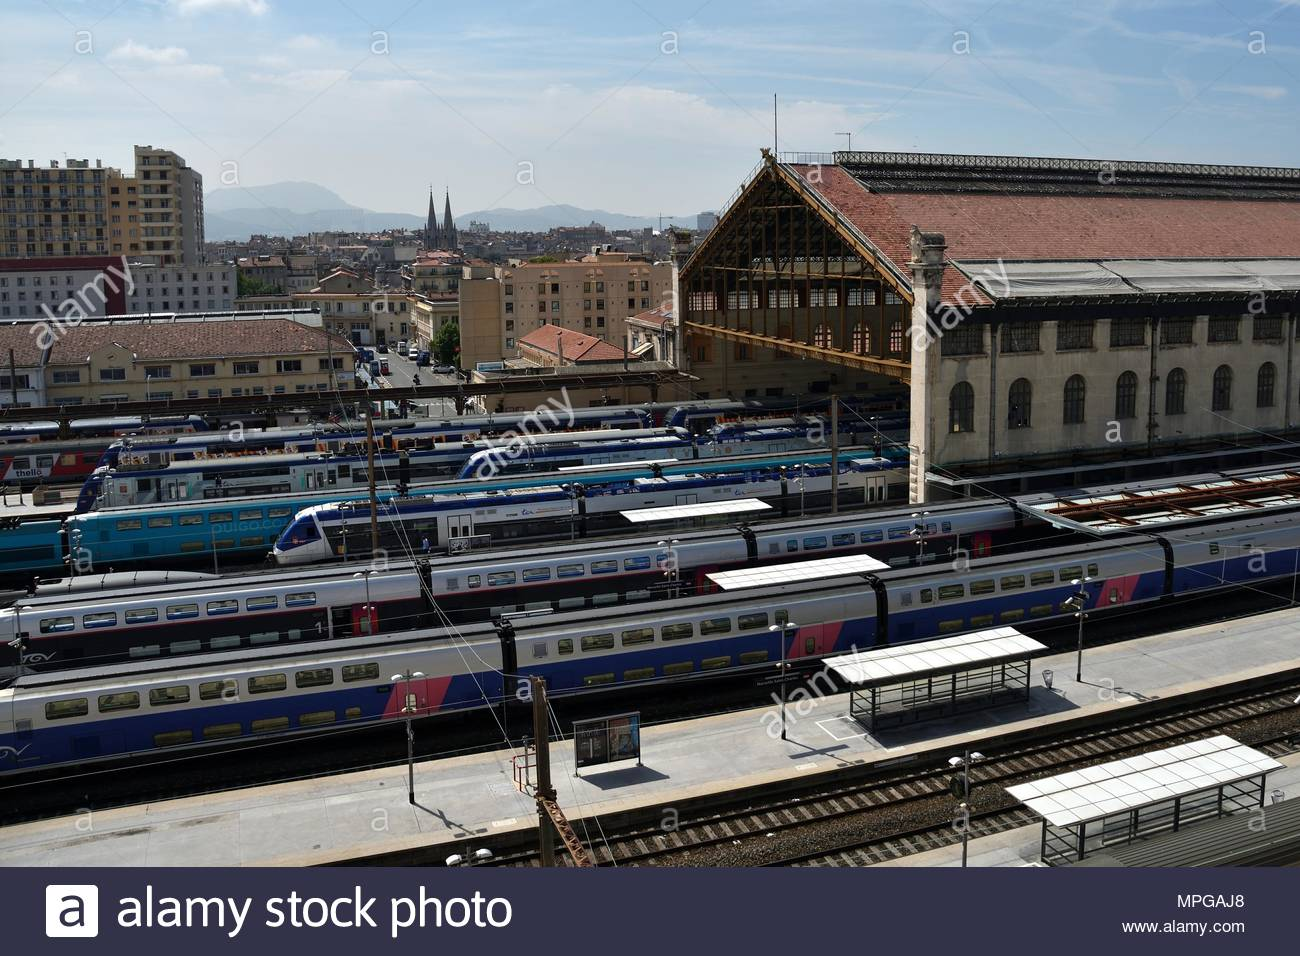 Marseille, France. 23rd May, 2018. A train station in Marseille, France is empty on May 23, 2018 as railway workers enter day 11 of their strike against France's state-owned SNCF rail company. Railway workers across the country are rejecting President Emmanuel Macron's planned overhaul of the railways in an internal ballot organized by labor unions. (c) copyright Credit: CrowdSpark/Alamy Live News - Stock Image